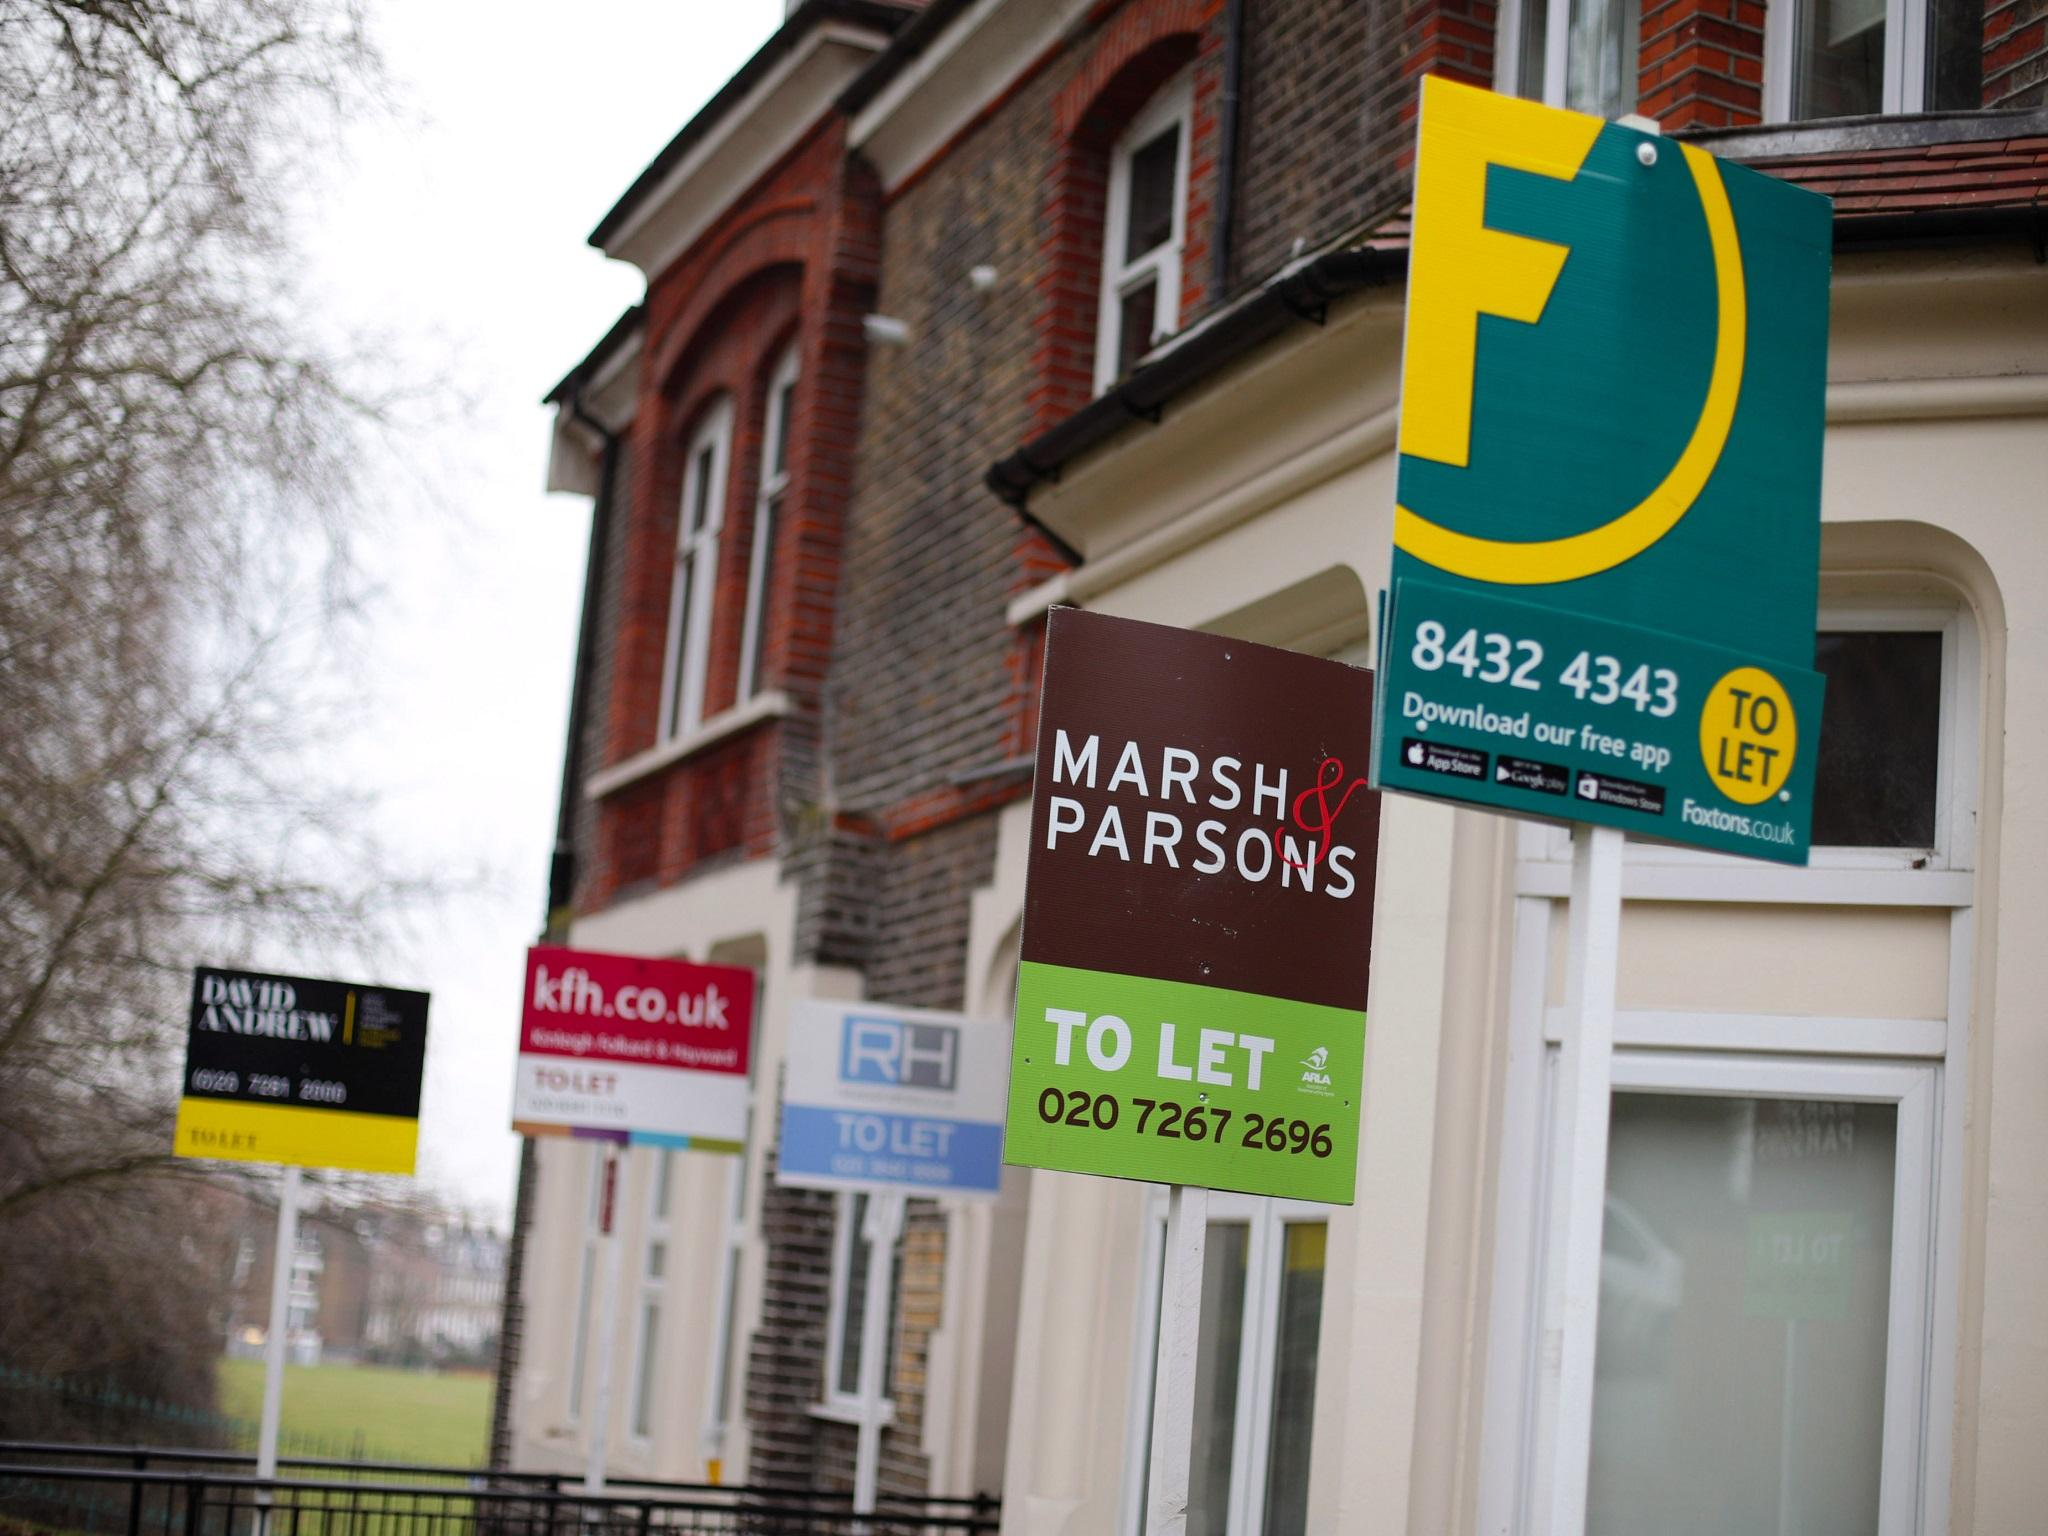 Now more than ever, the youth are relying on the bank of mum and dad to buy property. It is an economic disaster